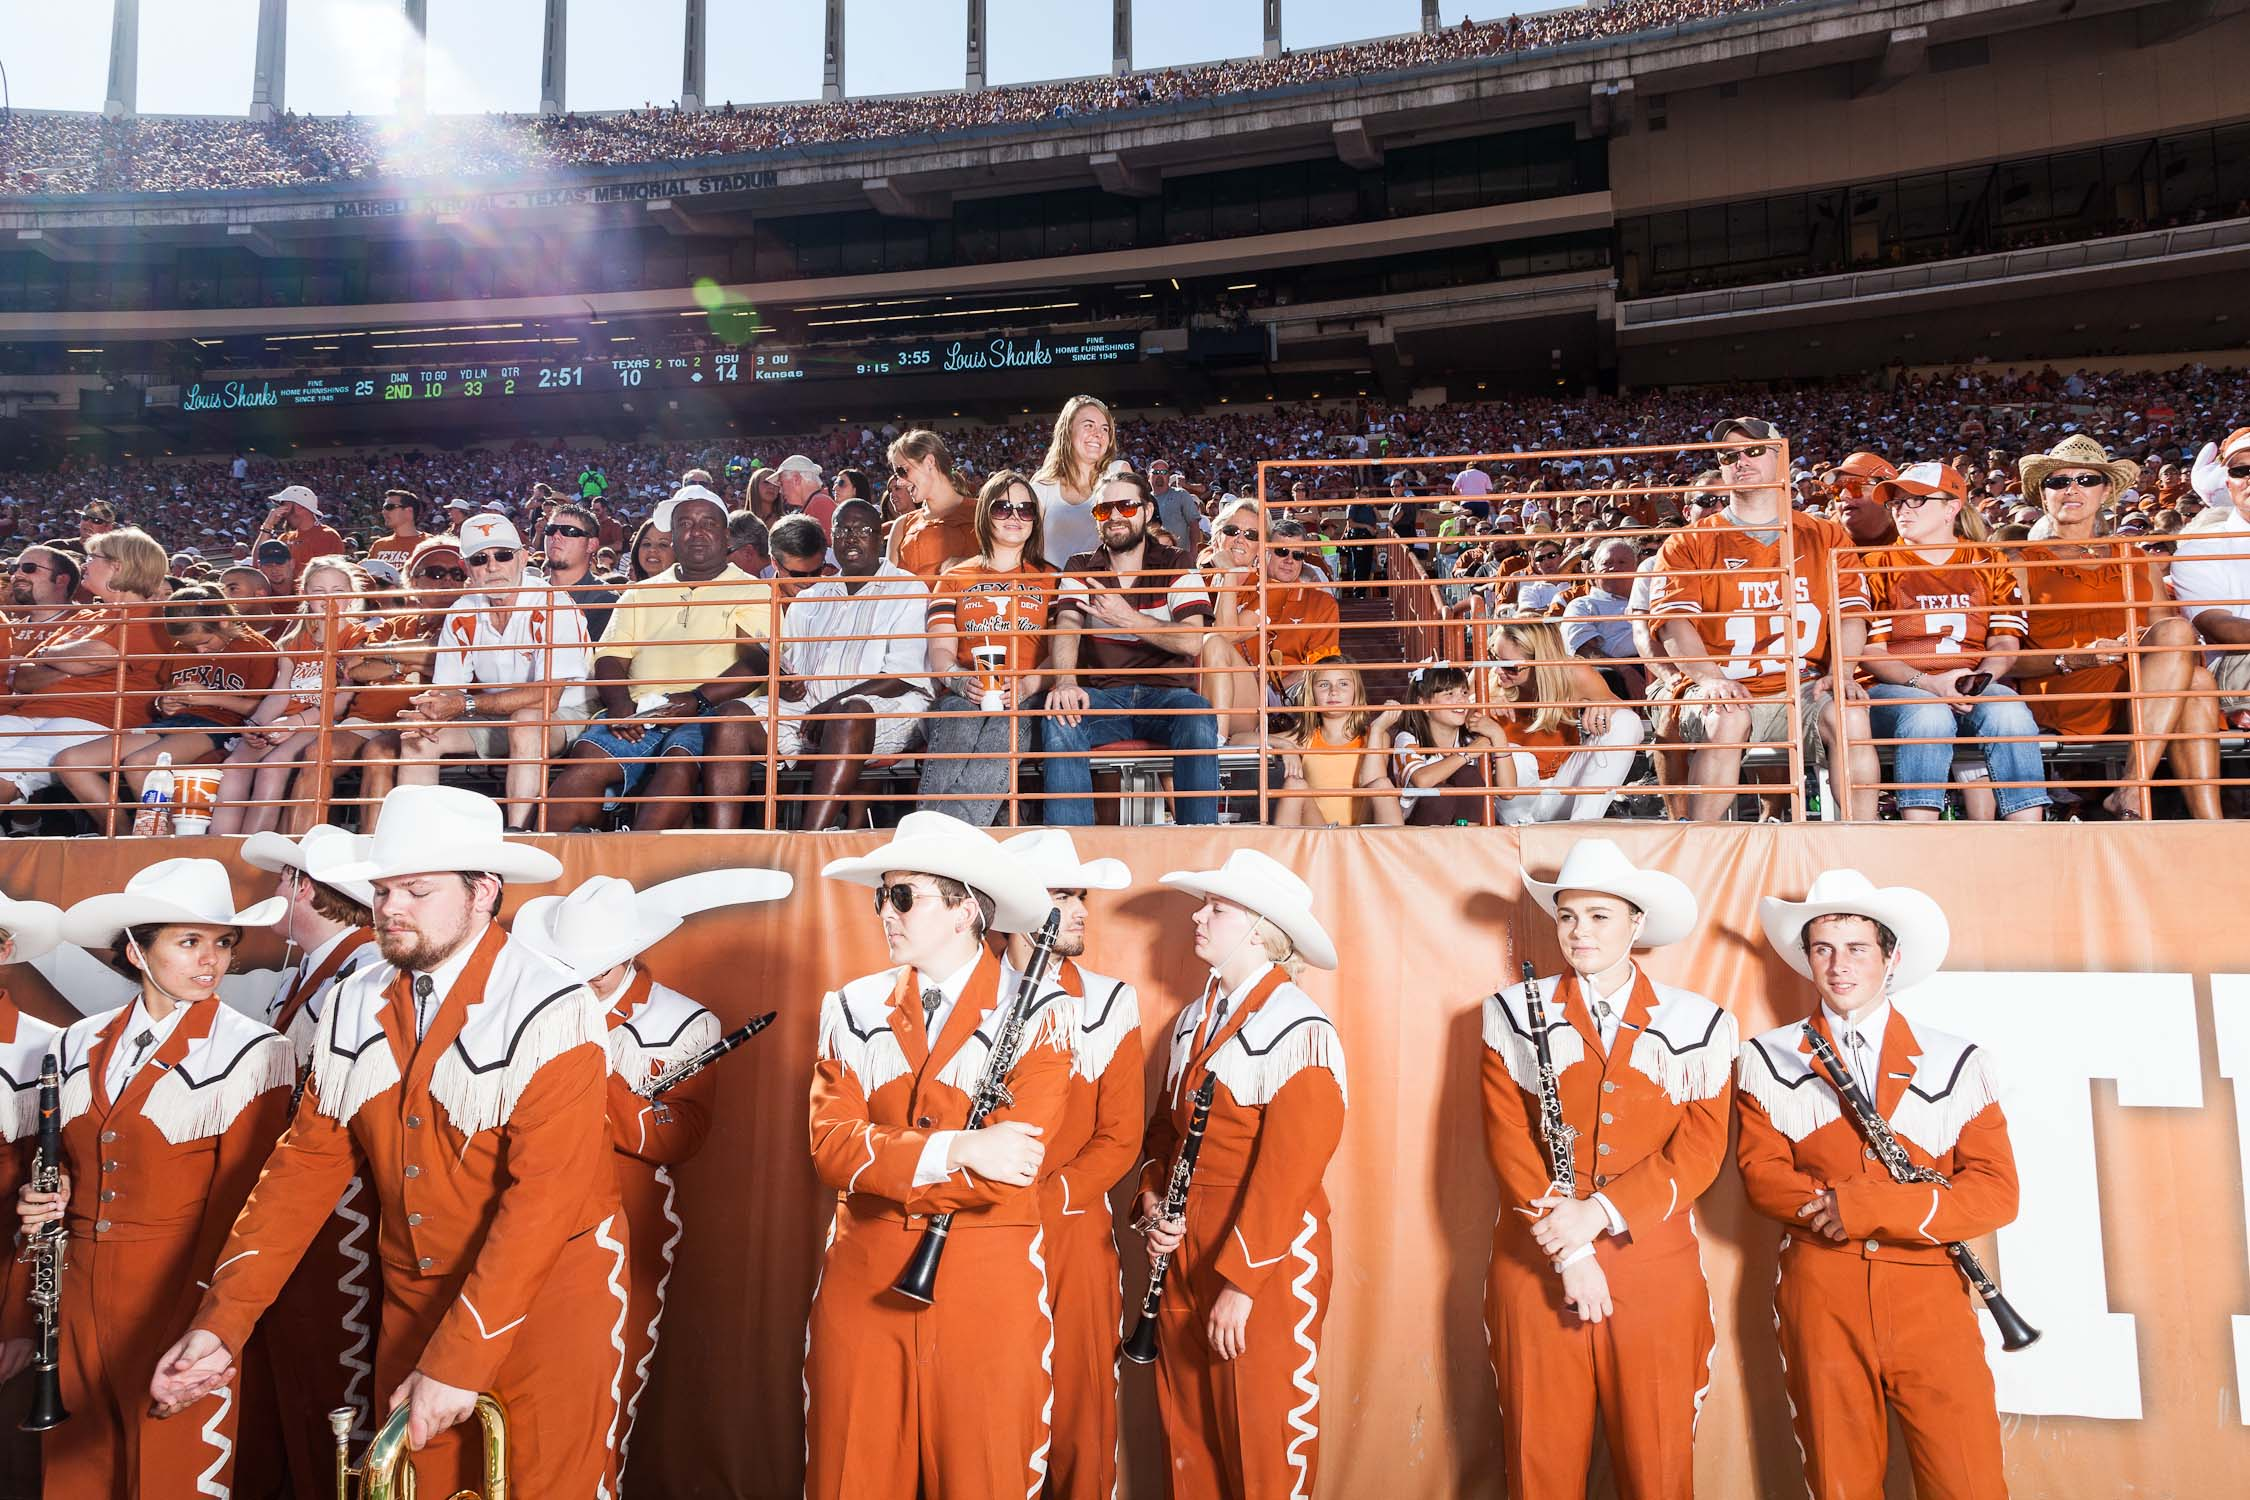 GAMEDAY AT THE UNIVERSITY OF TEXAS